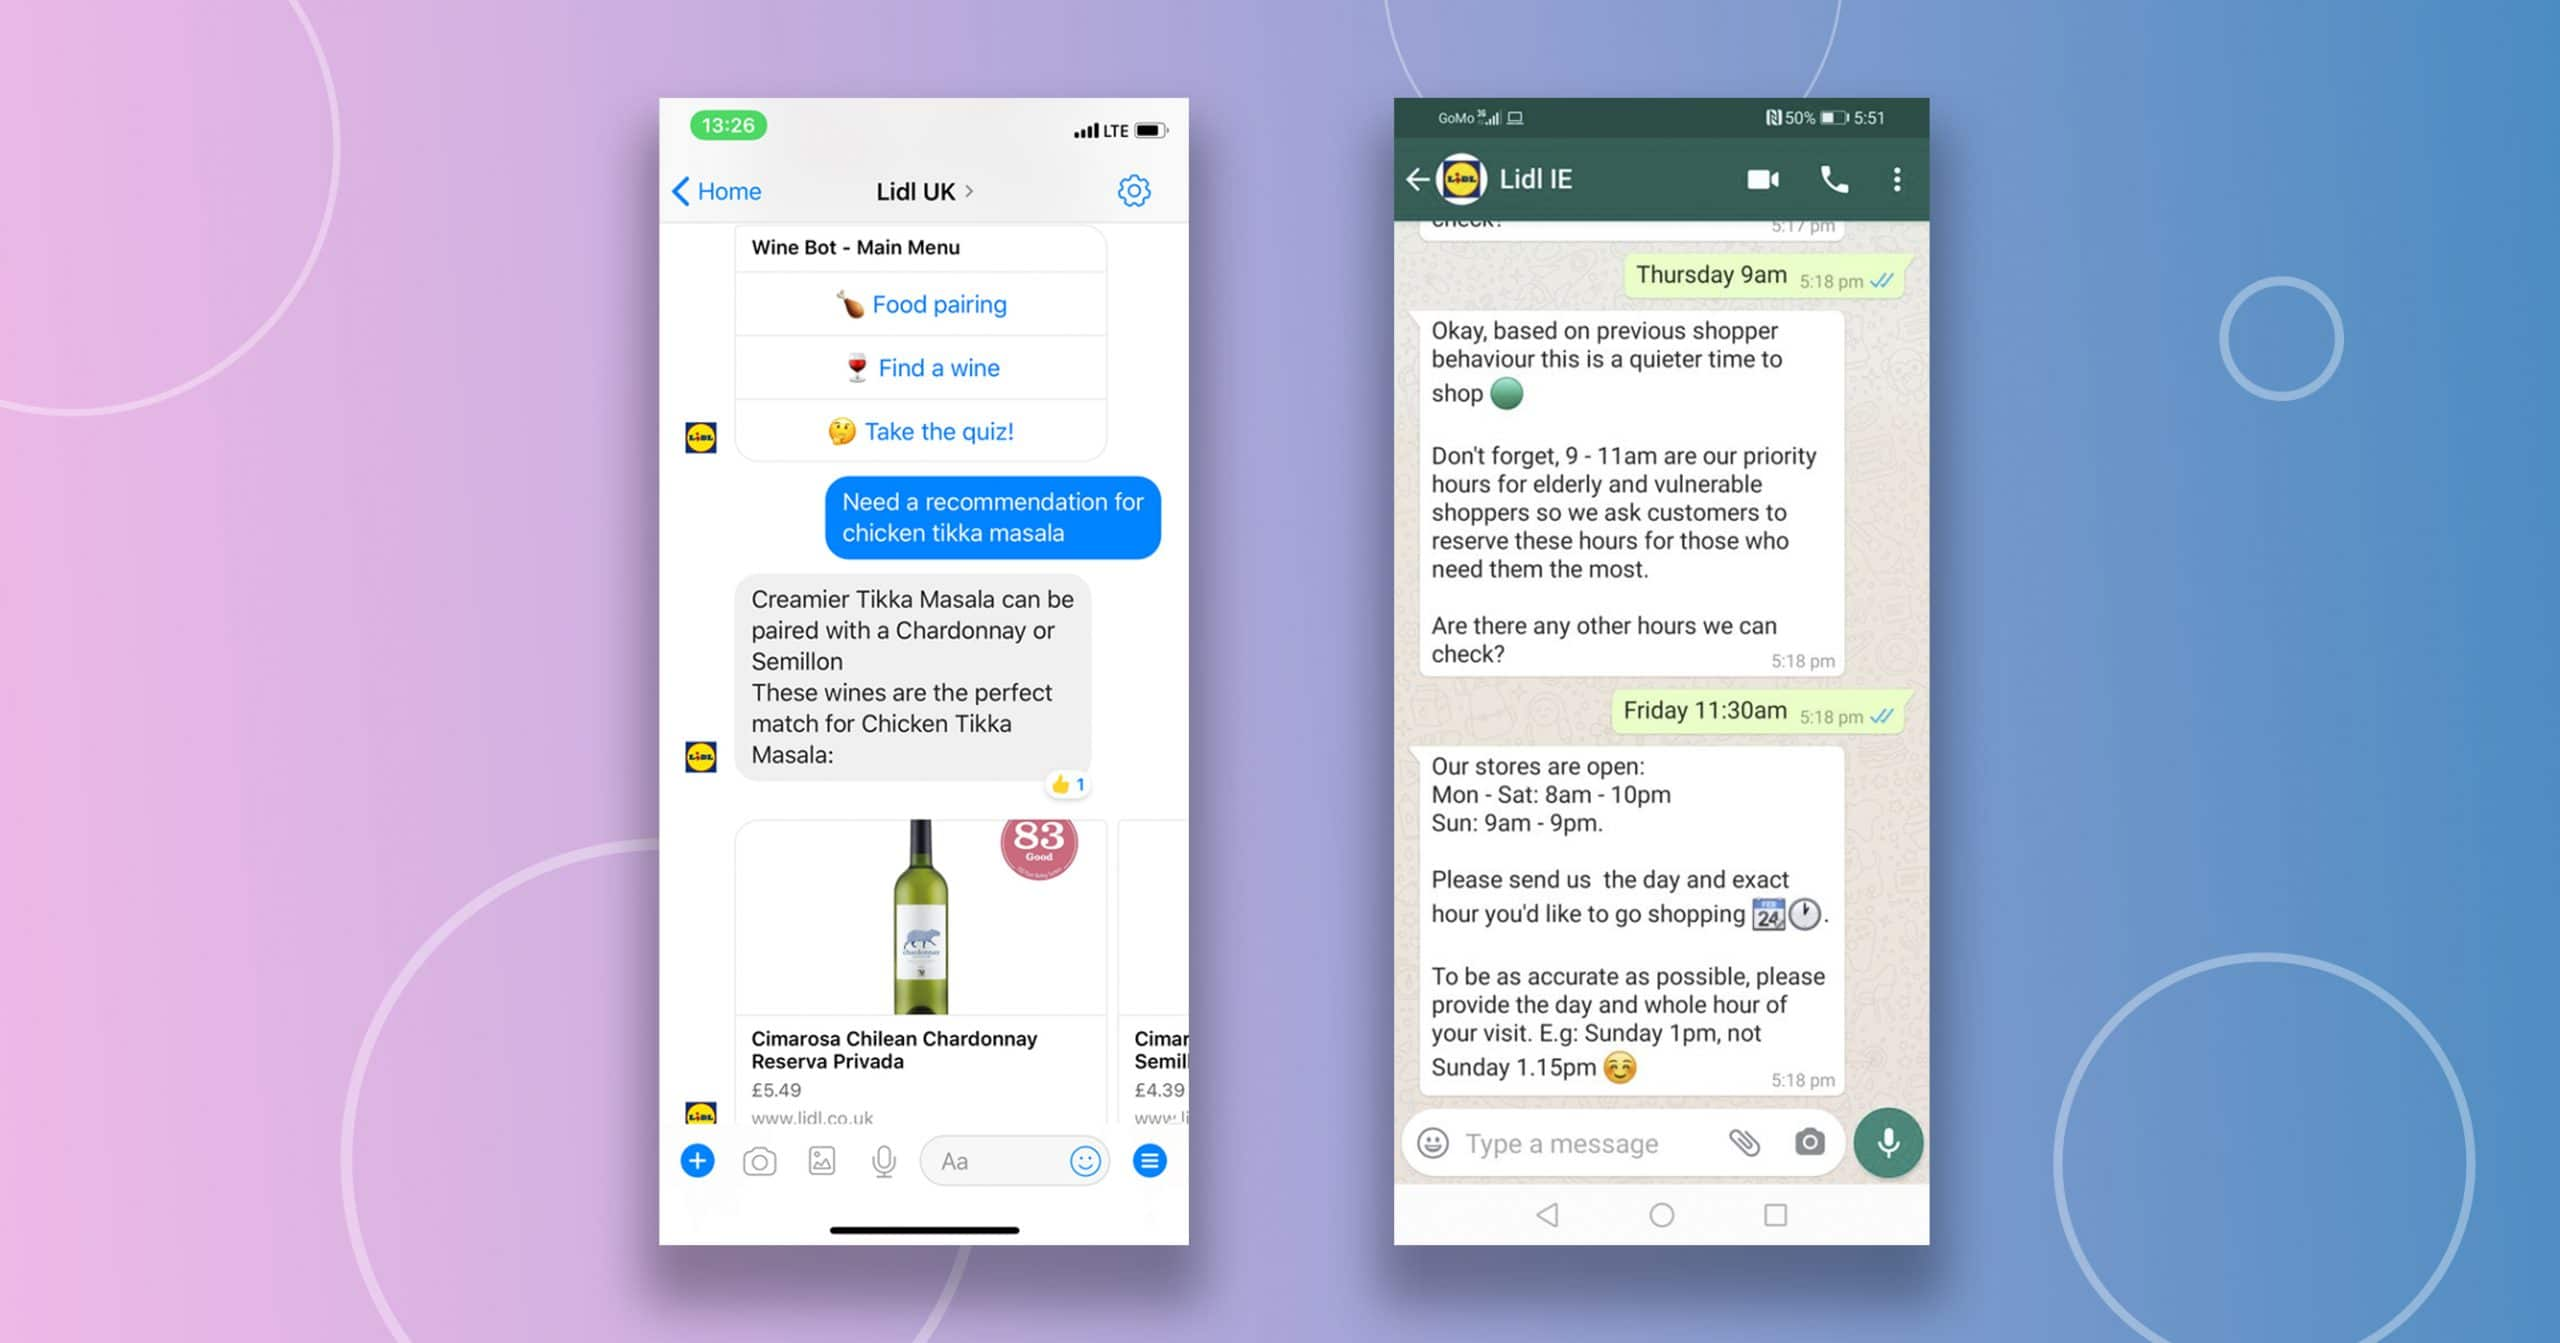 Chatbot Lidle